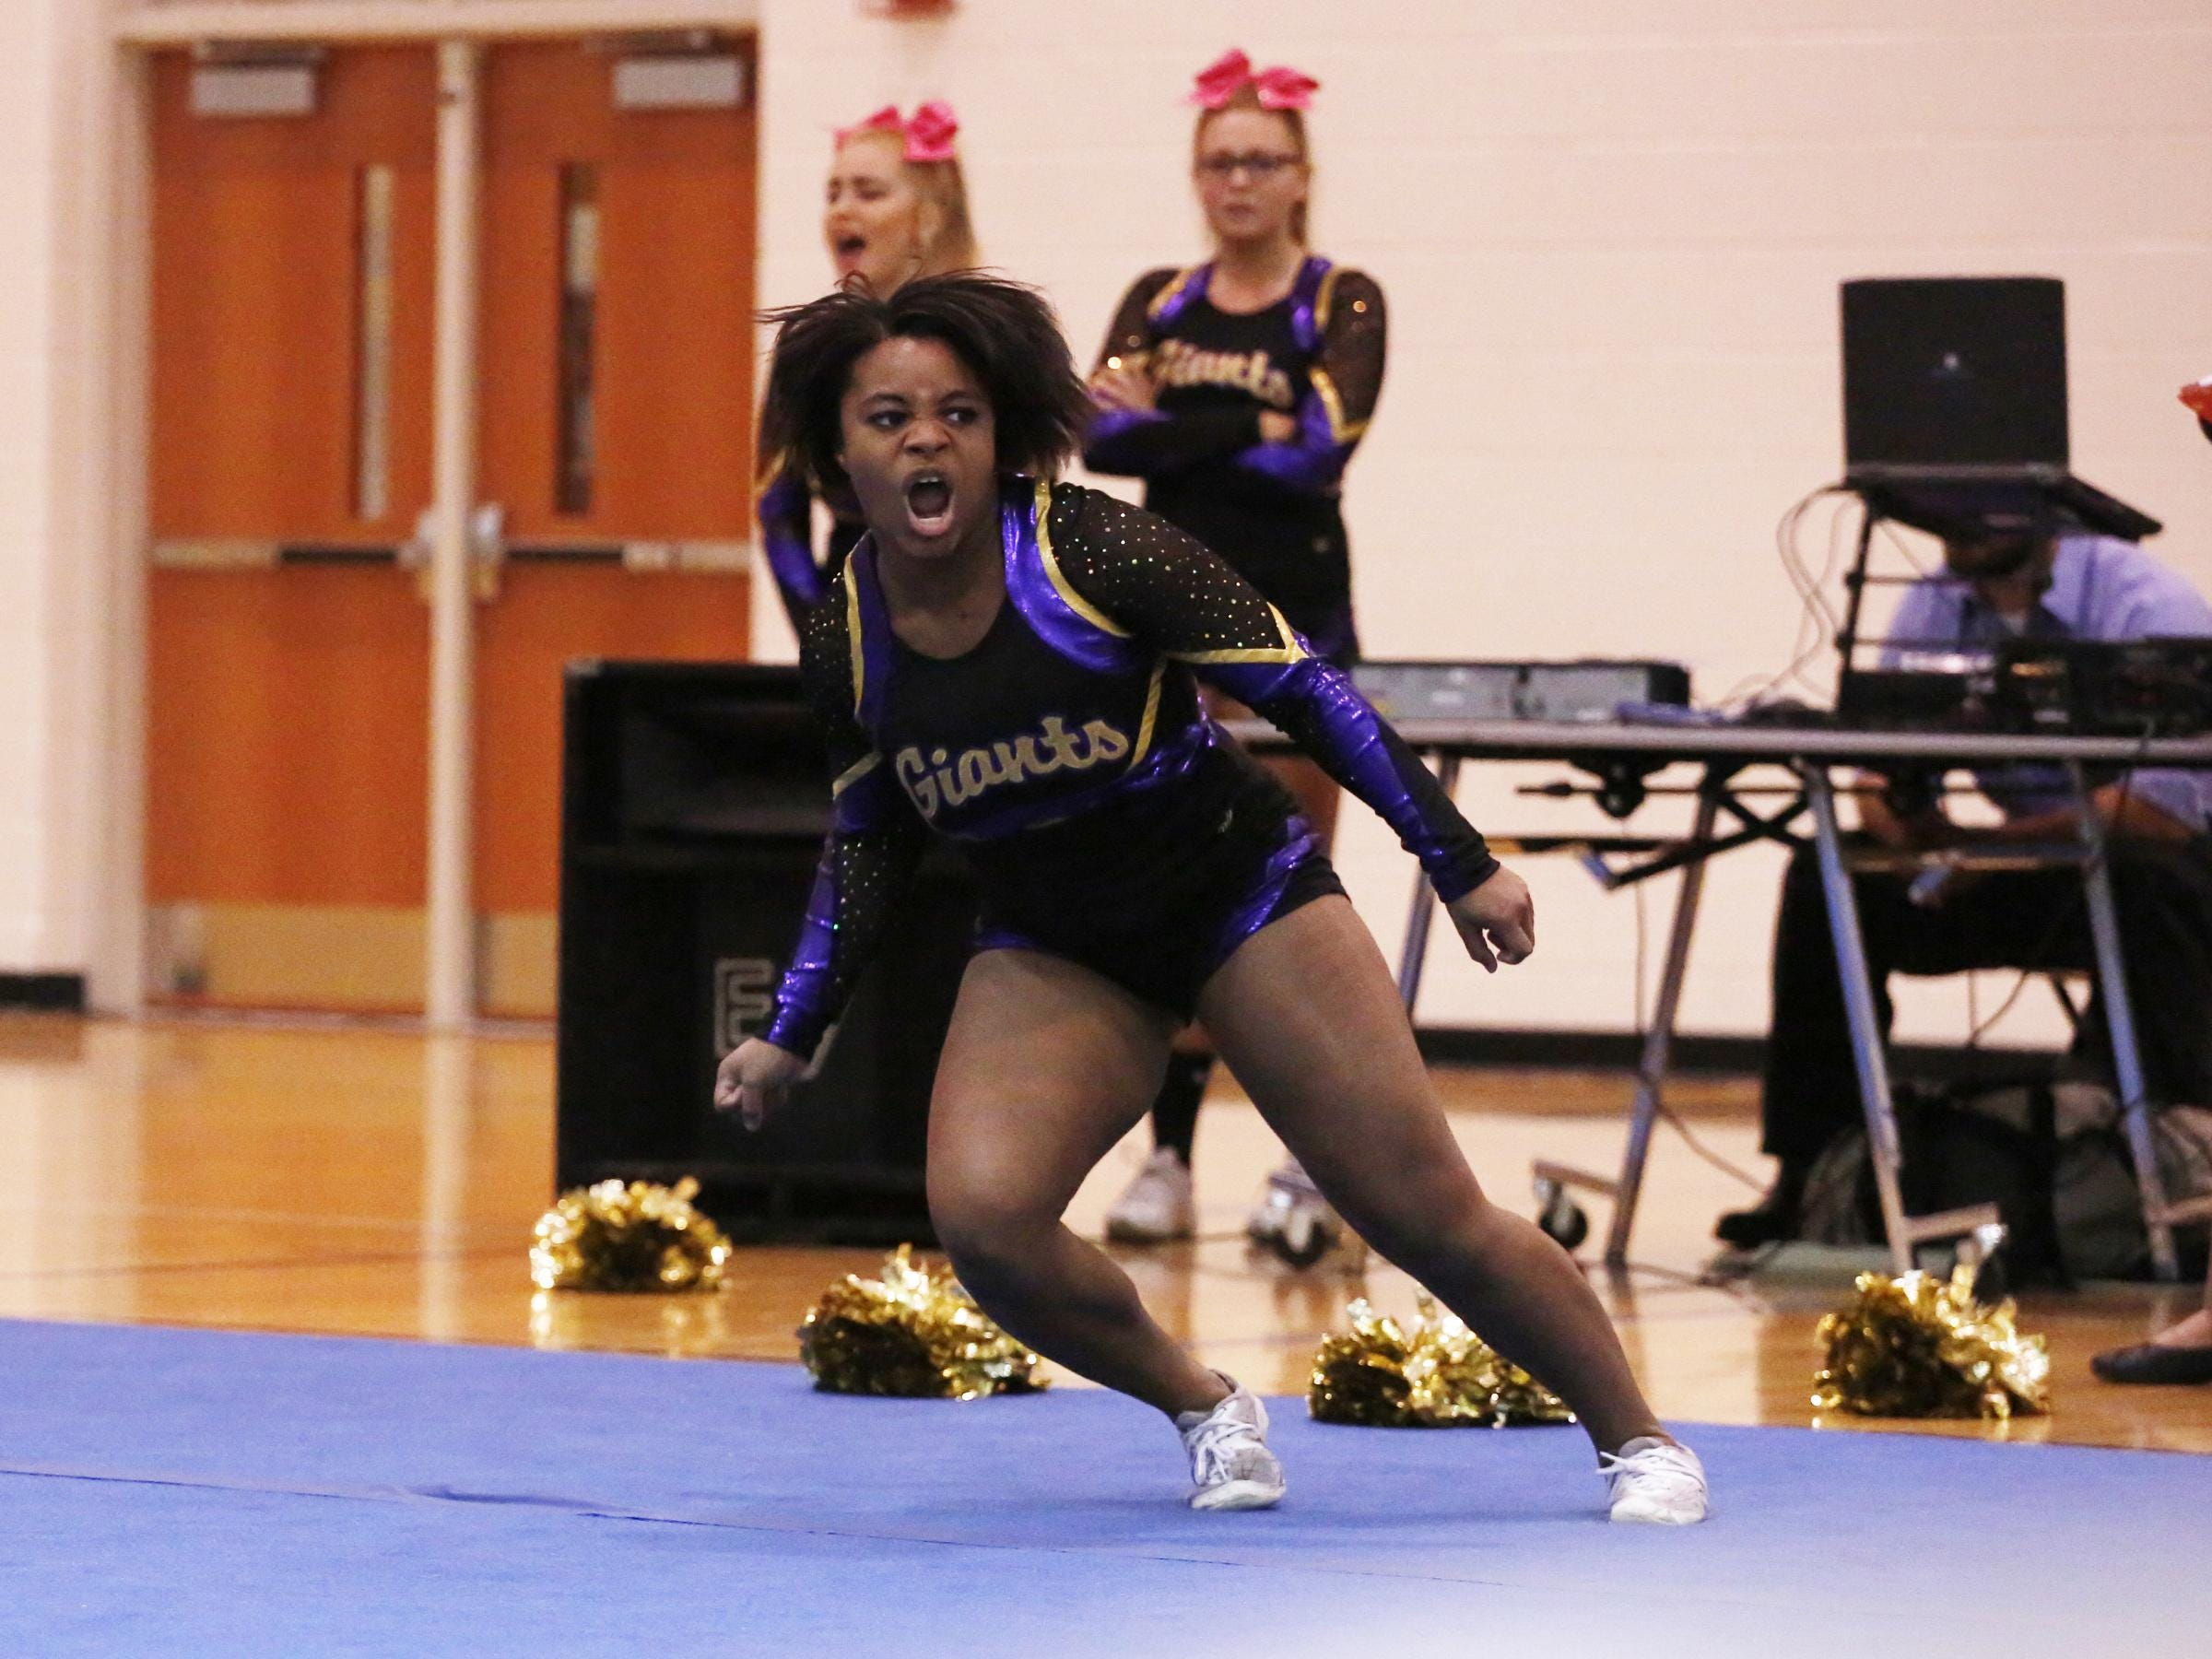 Waynesboro's Bryahnna Trice shouts after flipping across the mat during the Conference 29 competition cheer championship at Fluvanna County High School on Saturday.